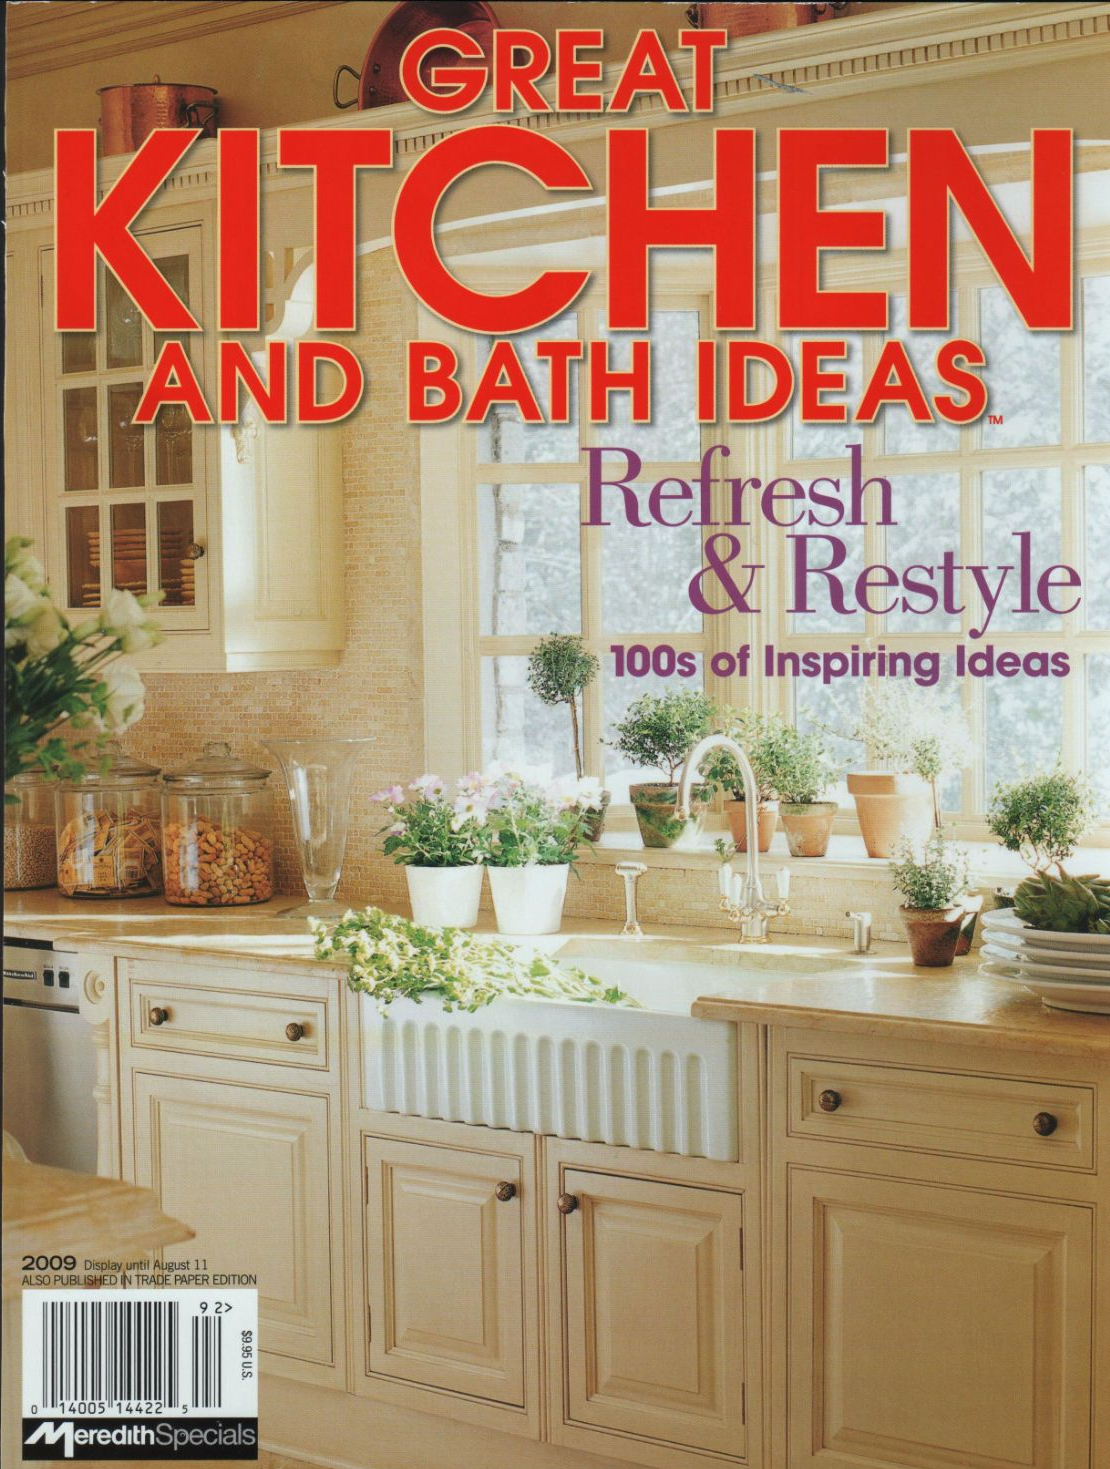 Great Kitchen and Bath Ideas